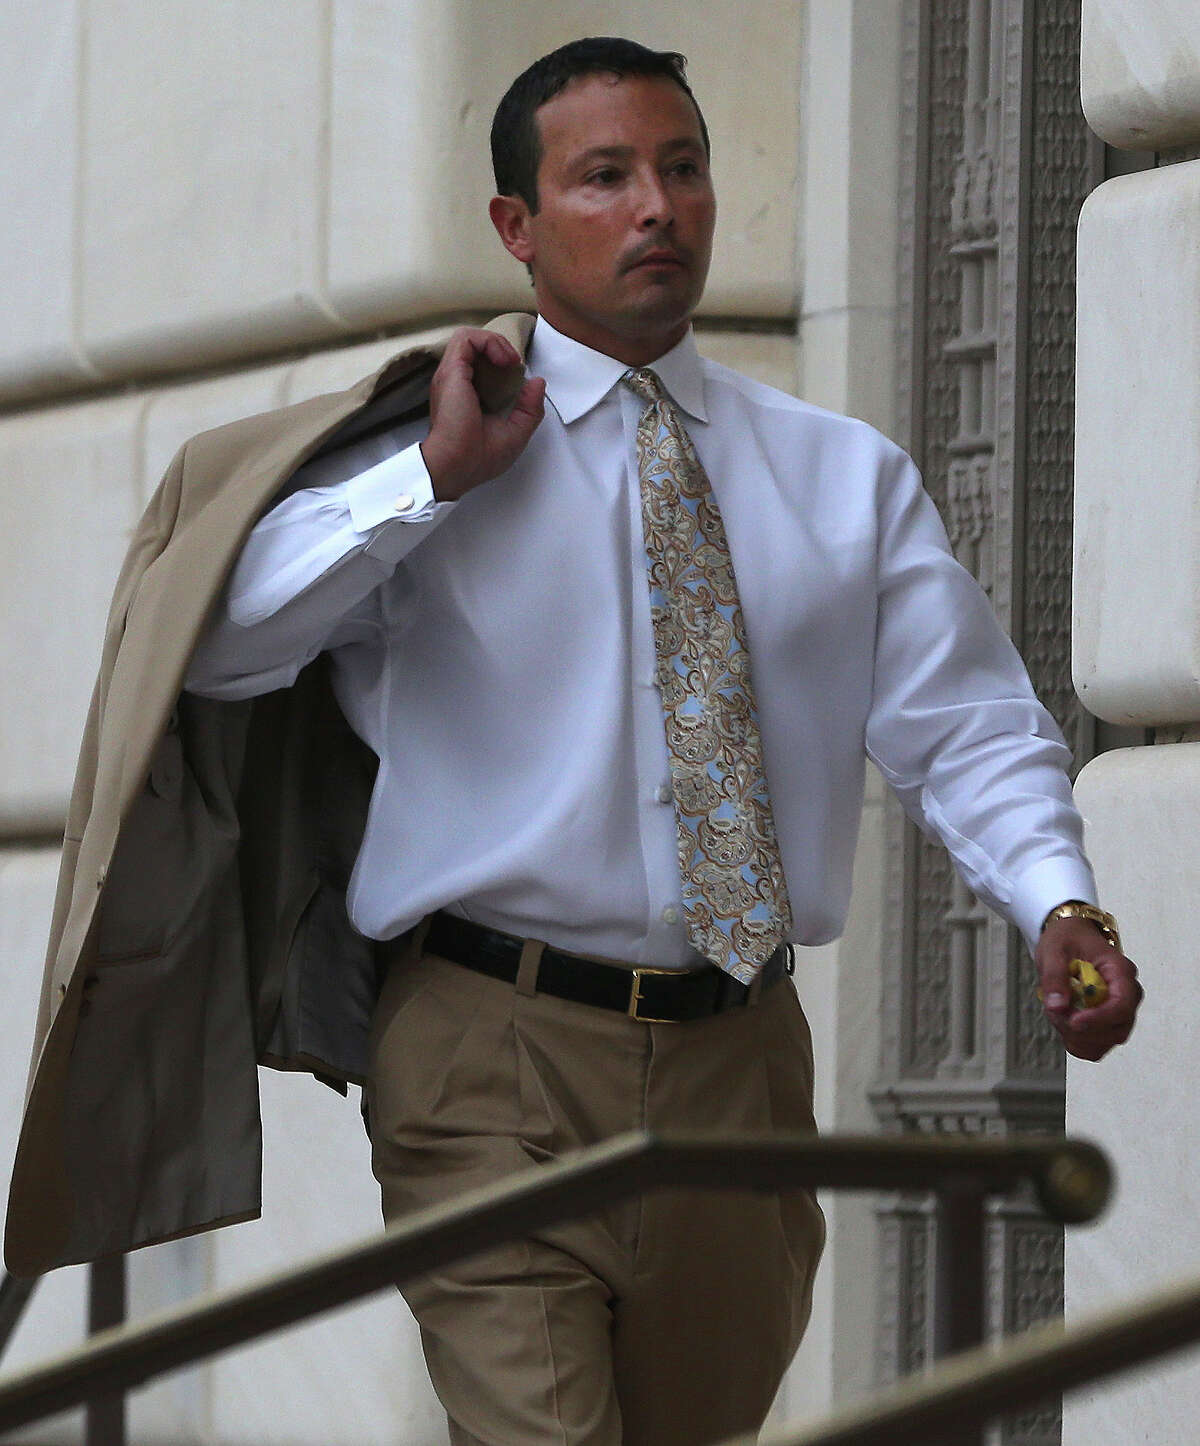 San Antonio oil and gas businessman Brian Alfaro enters the Hipolito F. Garcia Federal Building and United States Courthouse. Investors in Alfaro's company allege they've been defrauded and want the court to order Alfaro to turn over his personal financial records and to freeze any personal assets. Alfaro's lawyers contend the matter should be abitrated and not litigated as an adversary proceeding in bankruptcy court. U.S. Bankruptcy Judge Craig Gargotta is likey to take up the matter of whether Alfaro destroyed or threw out documents belonging to the company, which is now being overseen by a Chapter 11 trustee.